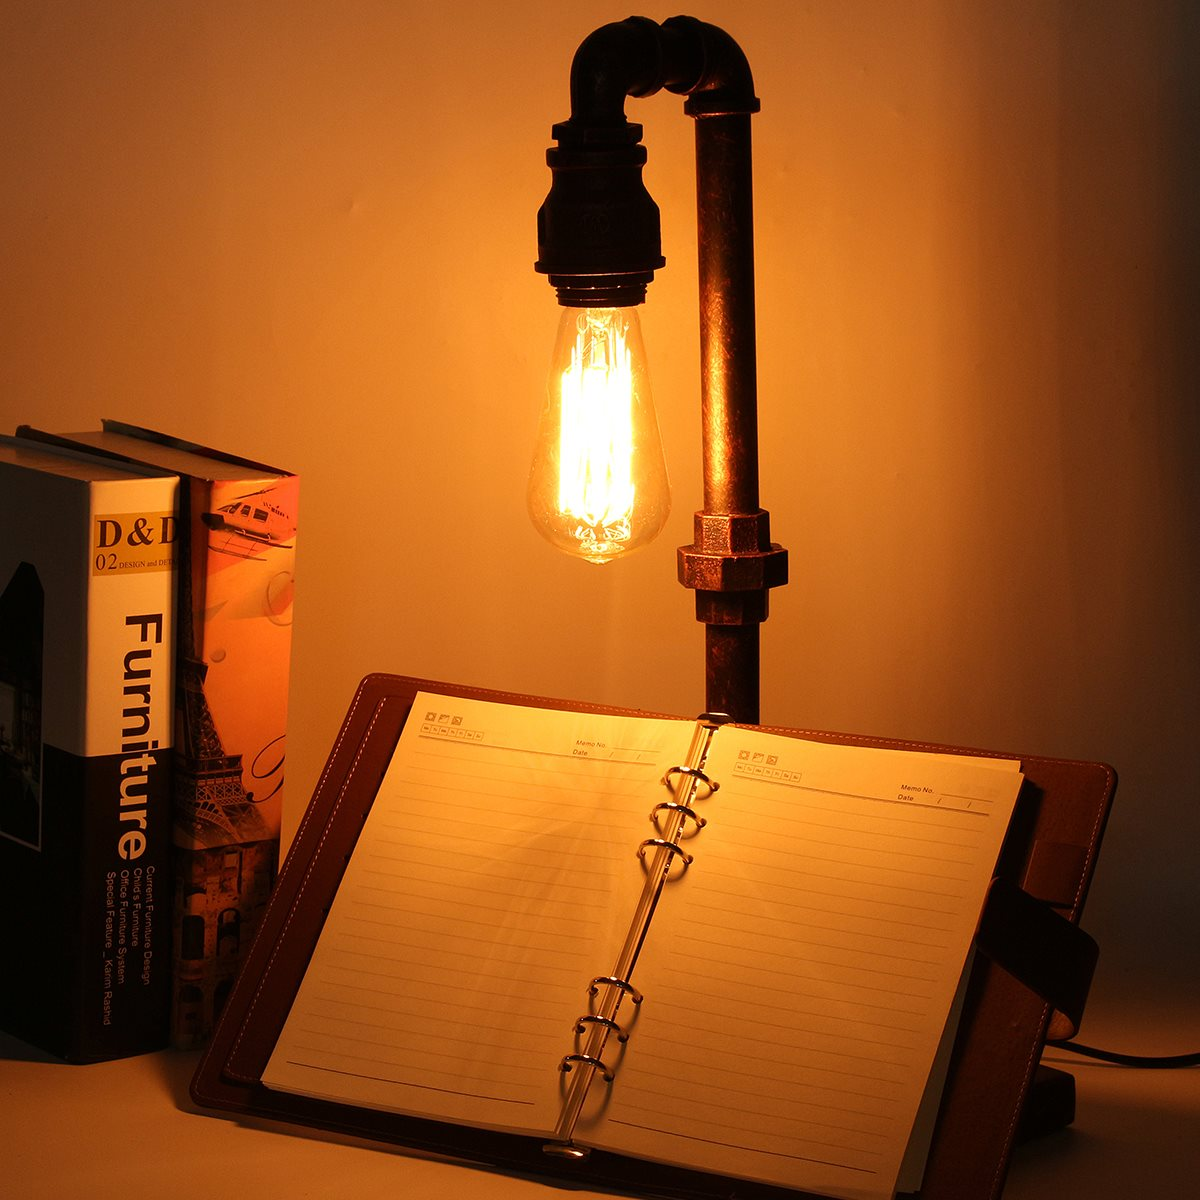 Retro Vintage Industrial Iron Pipe Table Light Switch Lamps For Bedroom Living Room Desk Lamp Reading US Plug